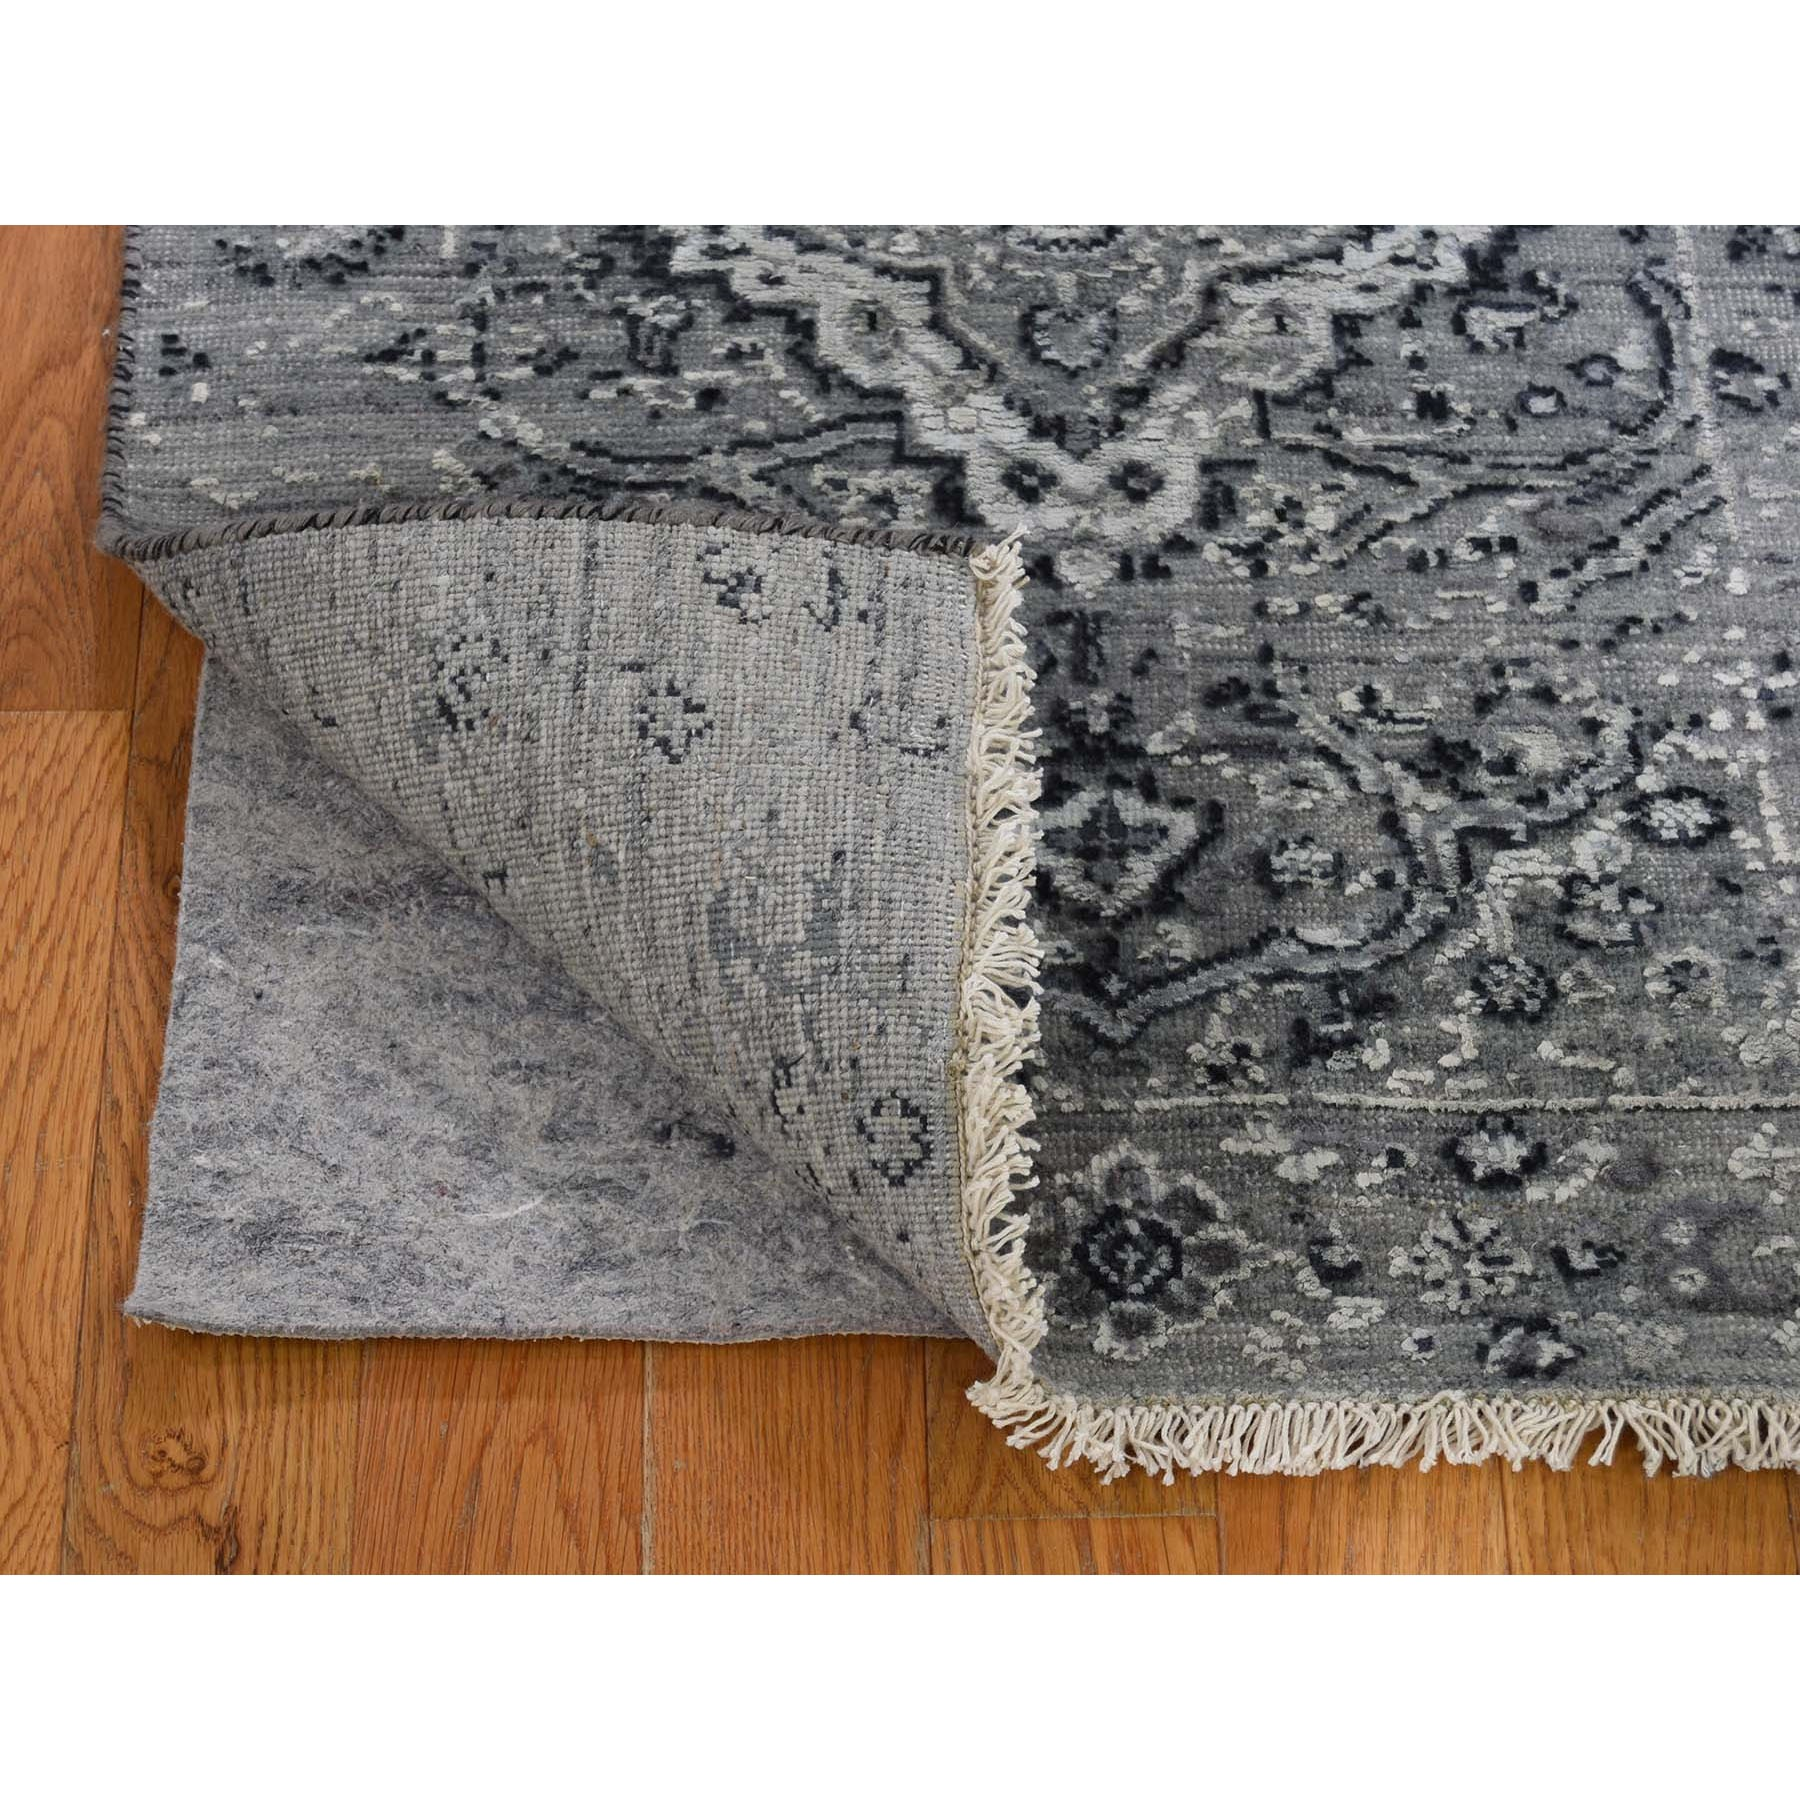 2-x3- Gray Broken Persian Erased Design Silk With Textured Wool Hand Knotted Oriental Rug